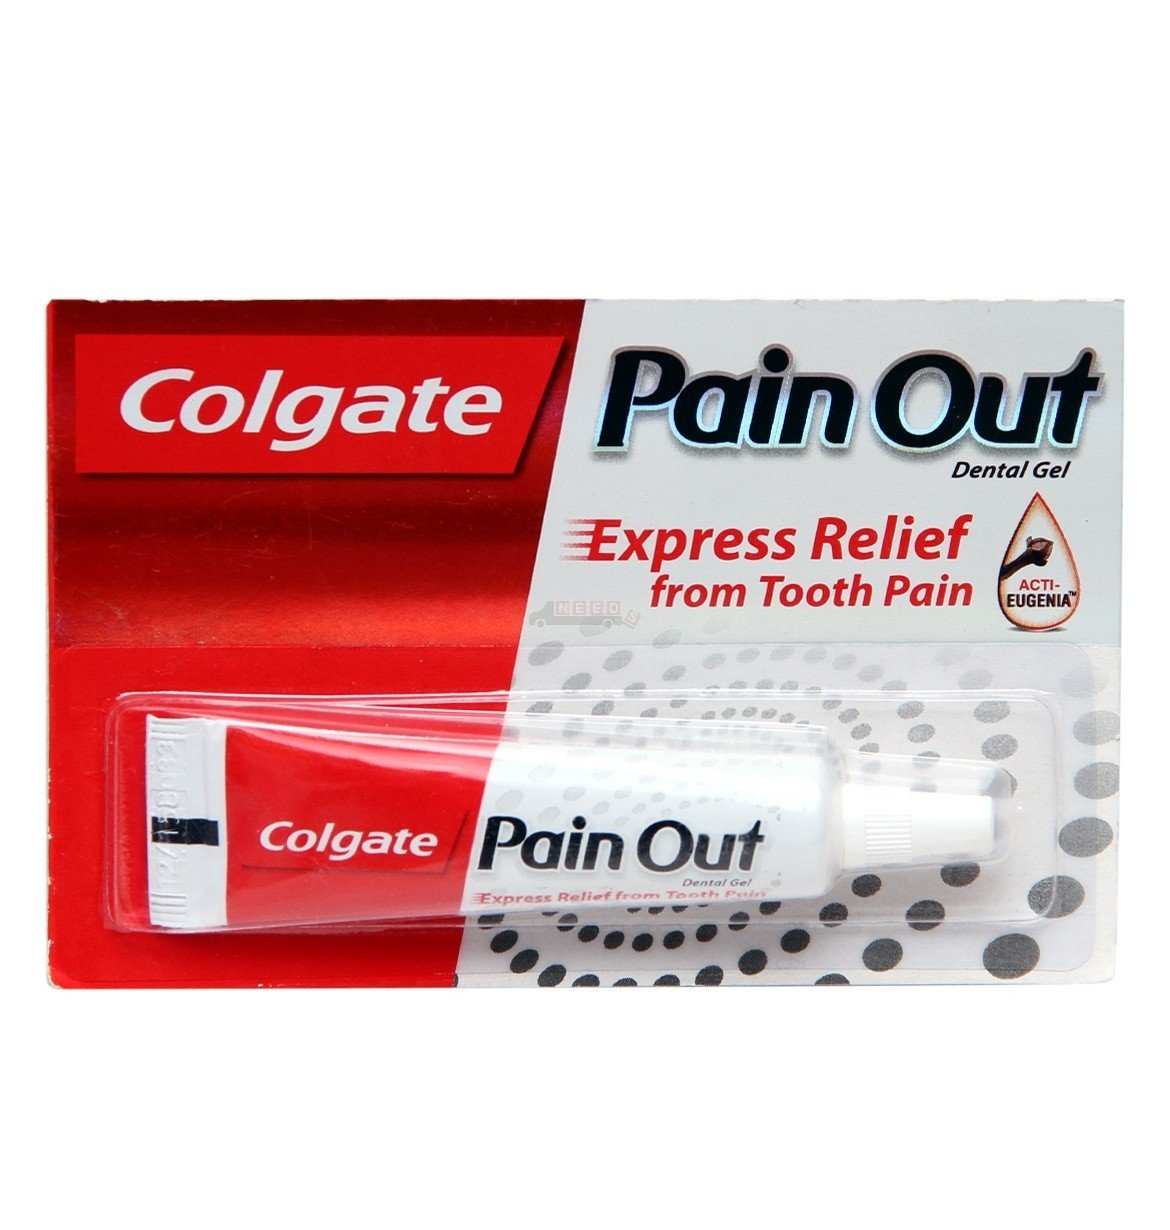 Colgate Pain Out Dental Gel - Express Relief from Tooth Pain - Proprietary Ayurvedic Medicine -10g-ACTI-EUGENIA